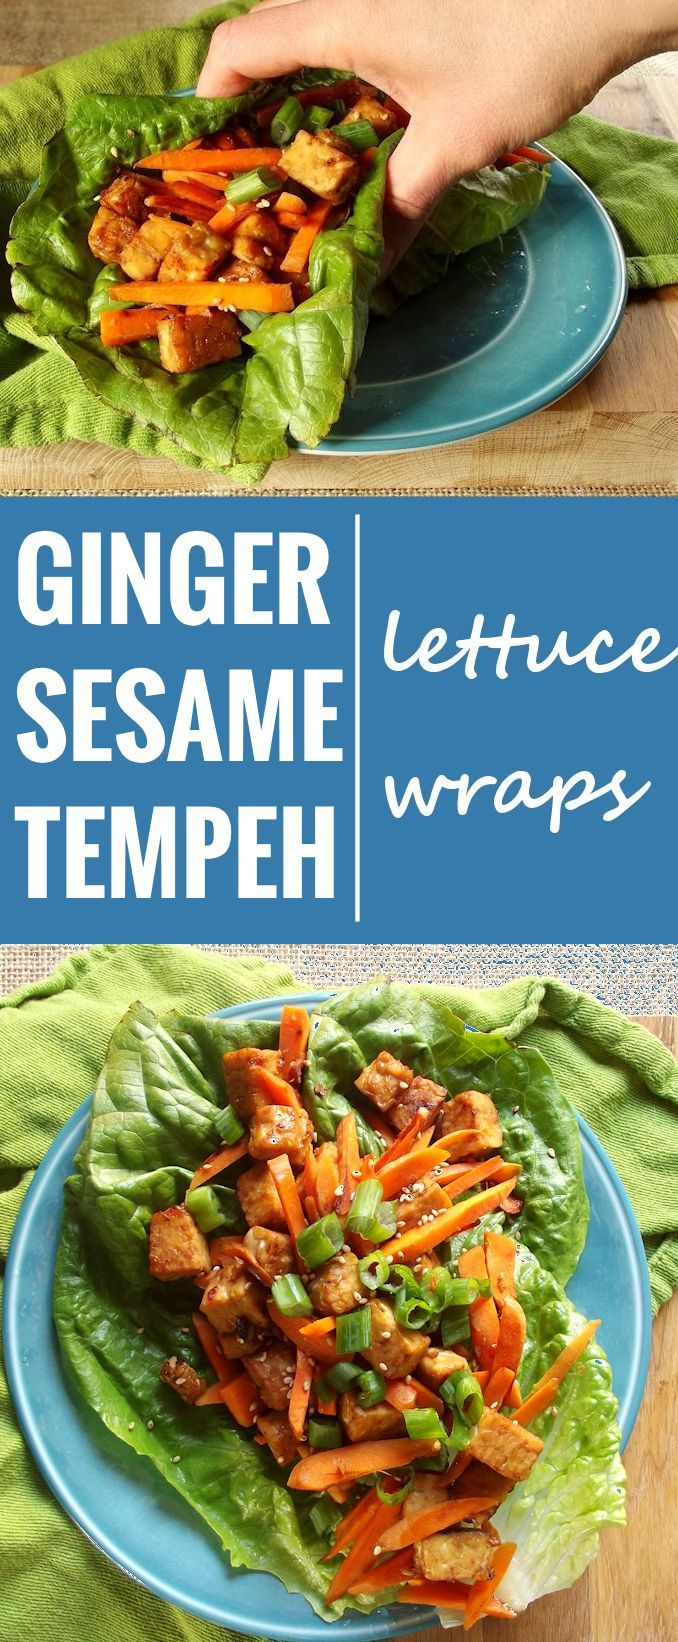 These tempeh lettuce wraps are made from crunchy lettuce leaves stuffed with pan-fried tempeh cubes in a savory sesame ginger sauce.